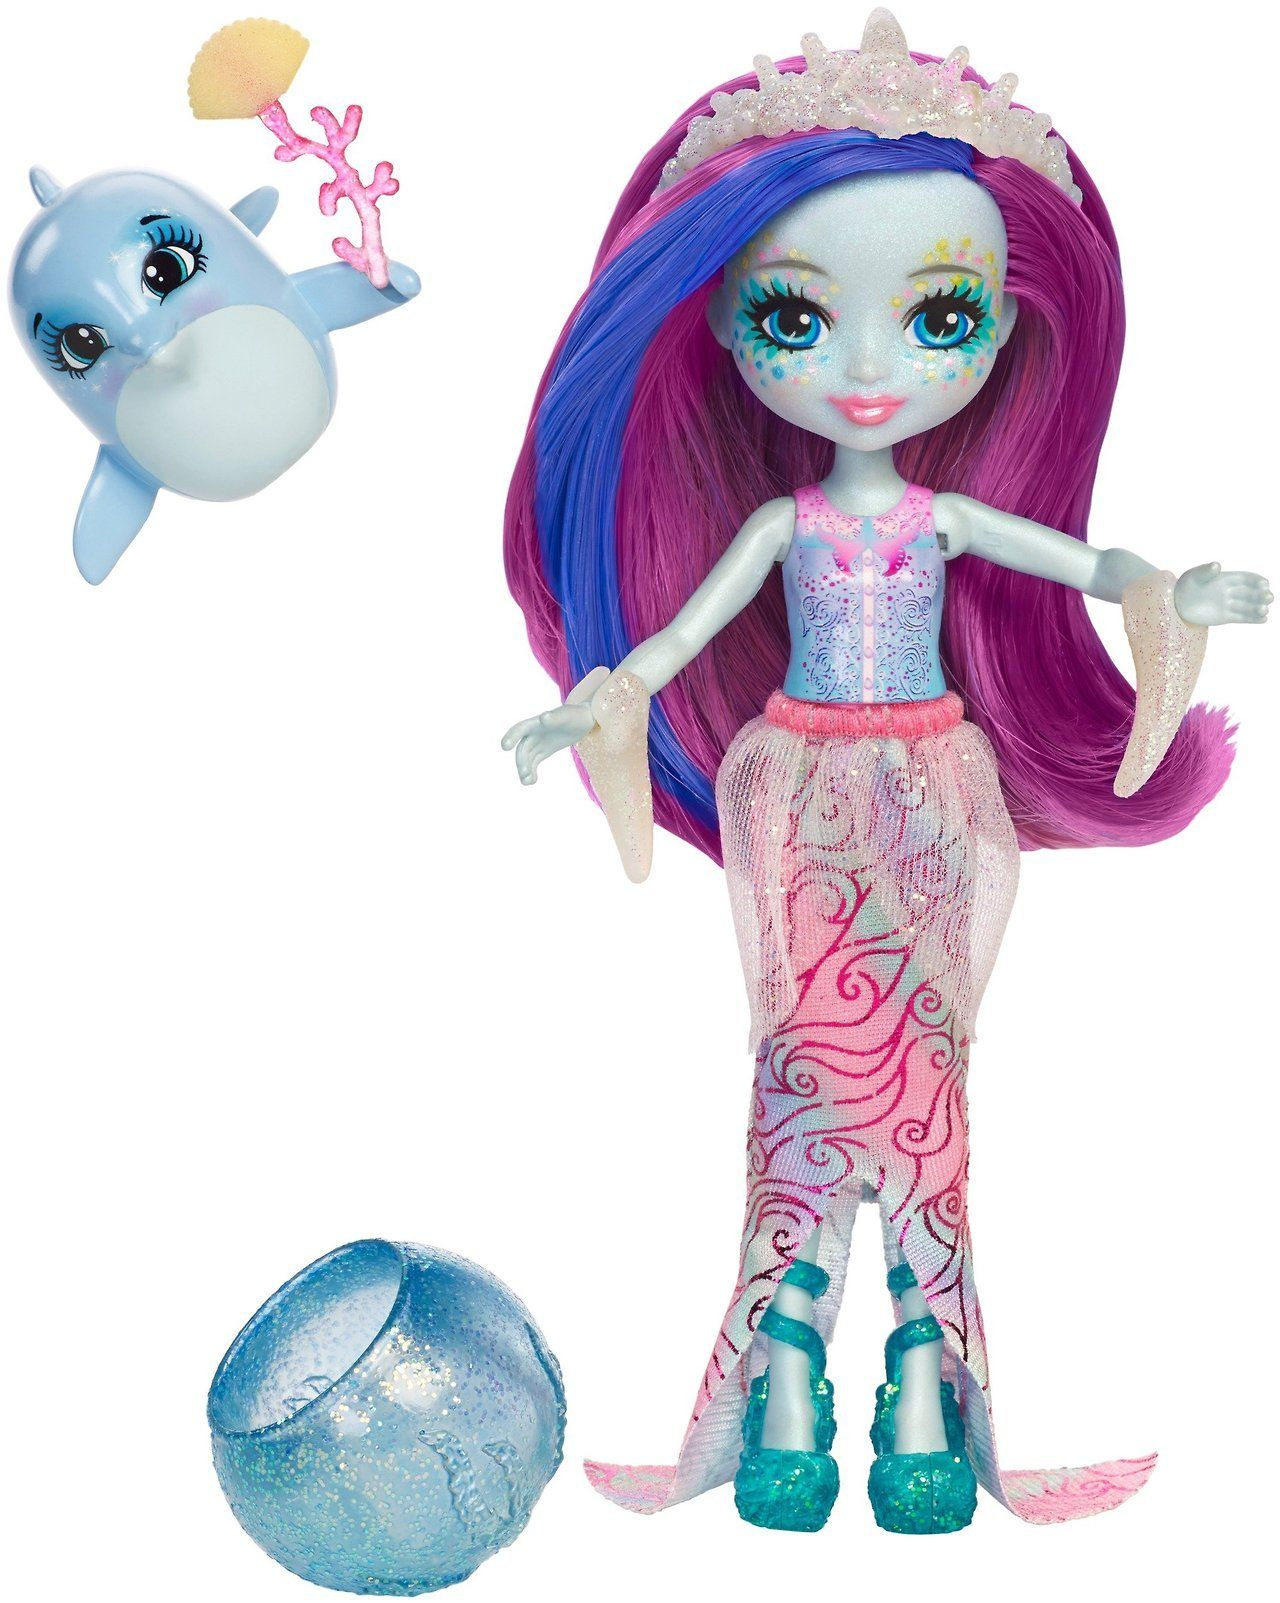 Enchantimals Dolls Dolce Dolphin Largo Dolce Dolphin Doll Will Best Friend Drawings Drawings Of Friends Rocking Horse Toy